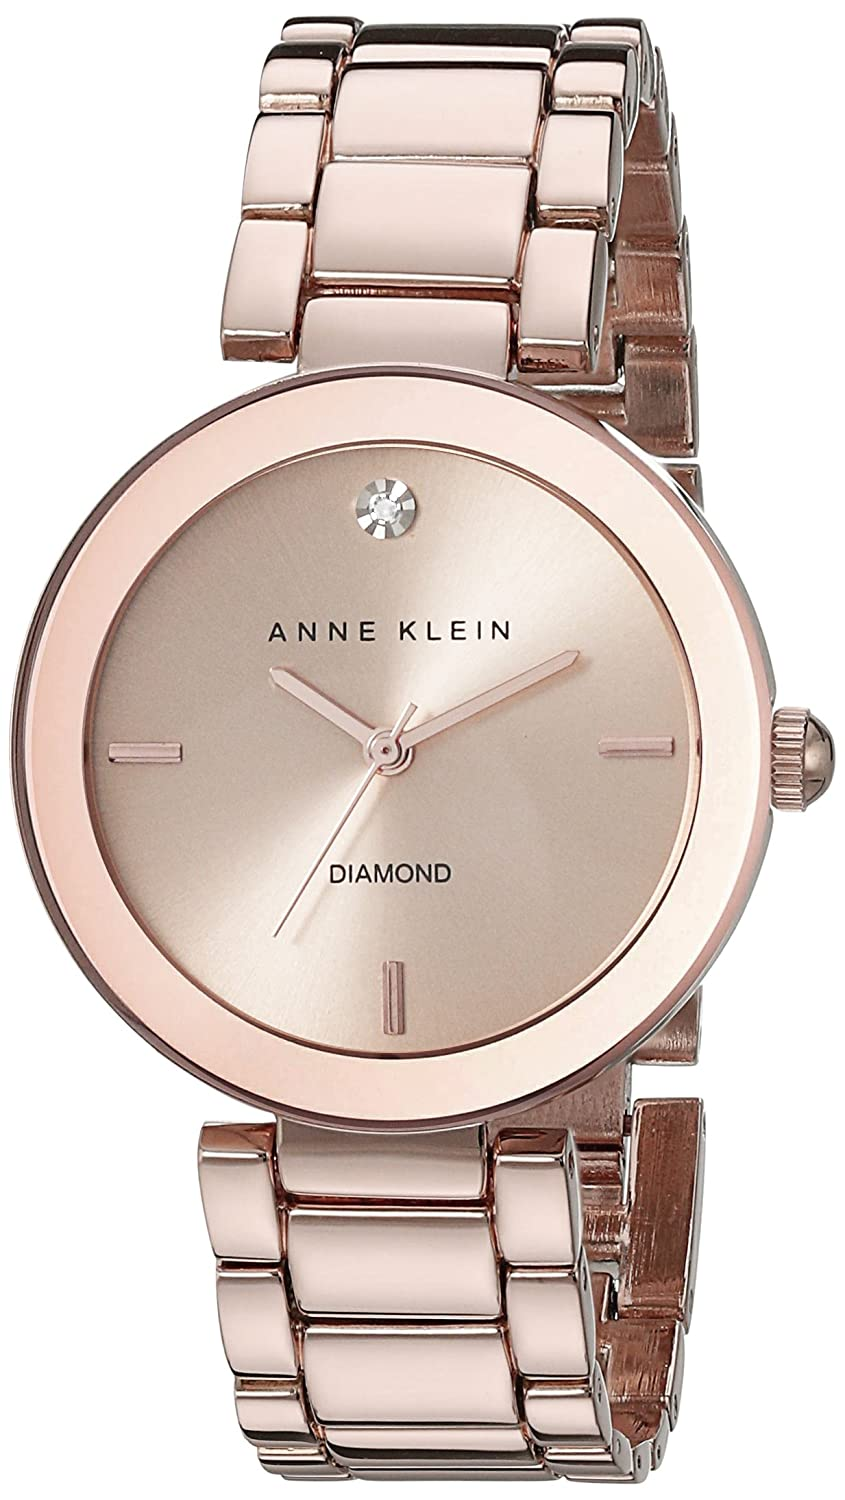 Anne Klein Women's AK/1362 Diamond-Accented Bracelet Watch